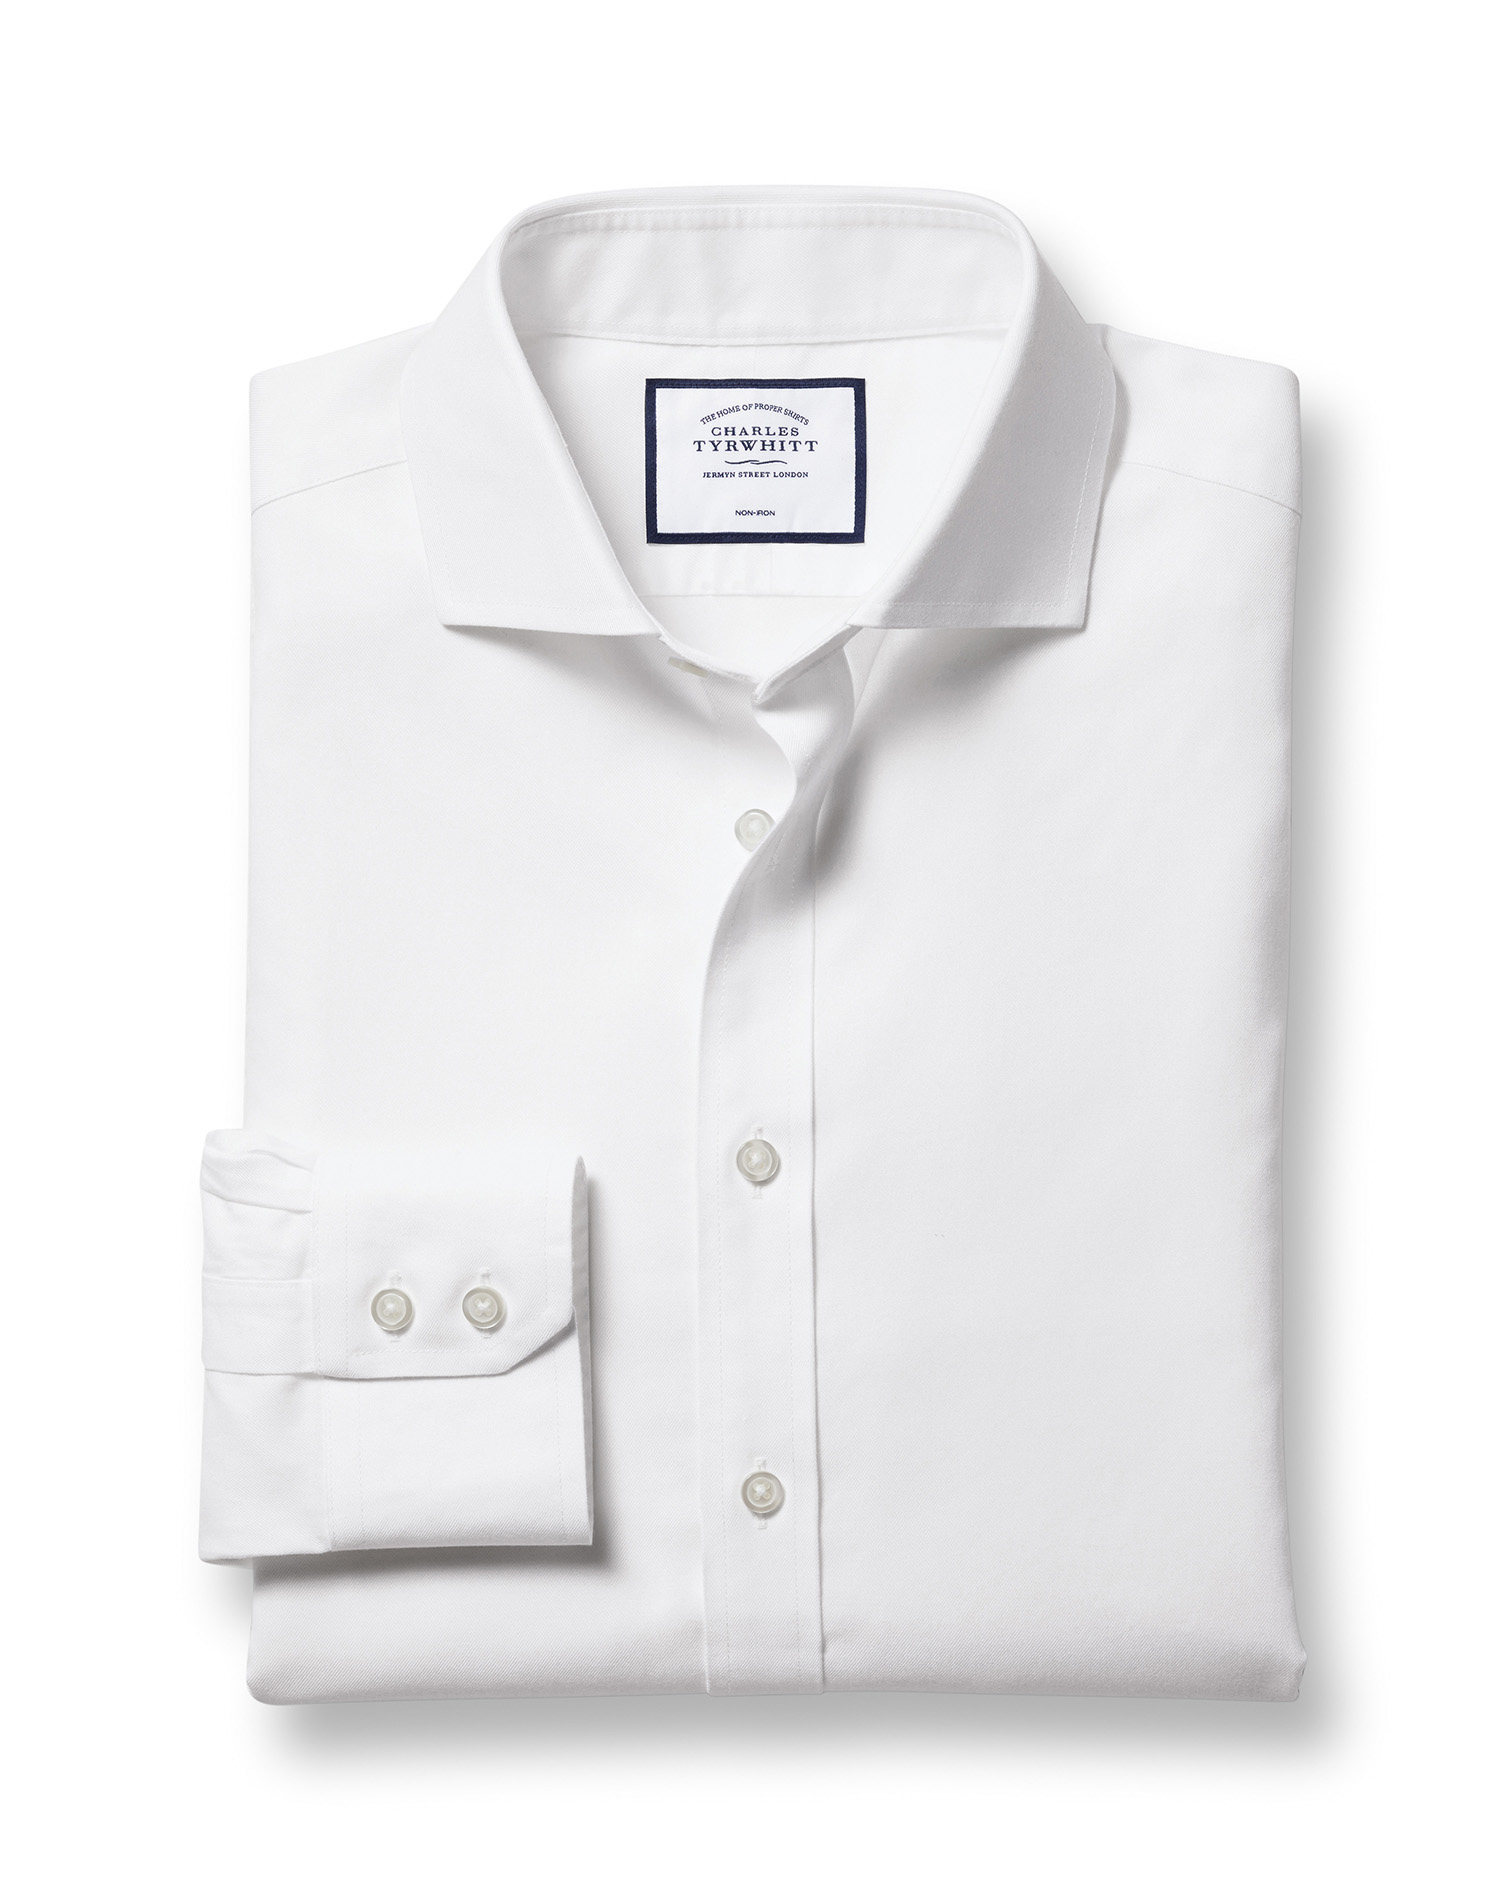 Slim Fit White Non-Iron Twill Cutaway Cotton Formal Shirt Single Cuff Size 18/35 by Charles Tyrwhitt